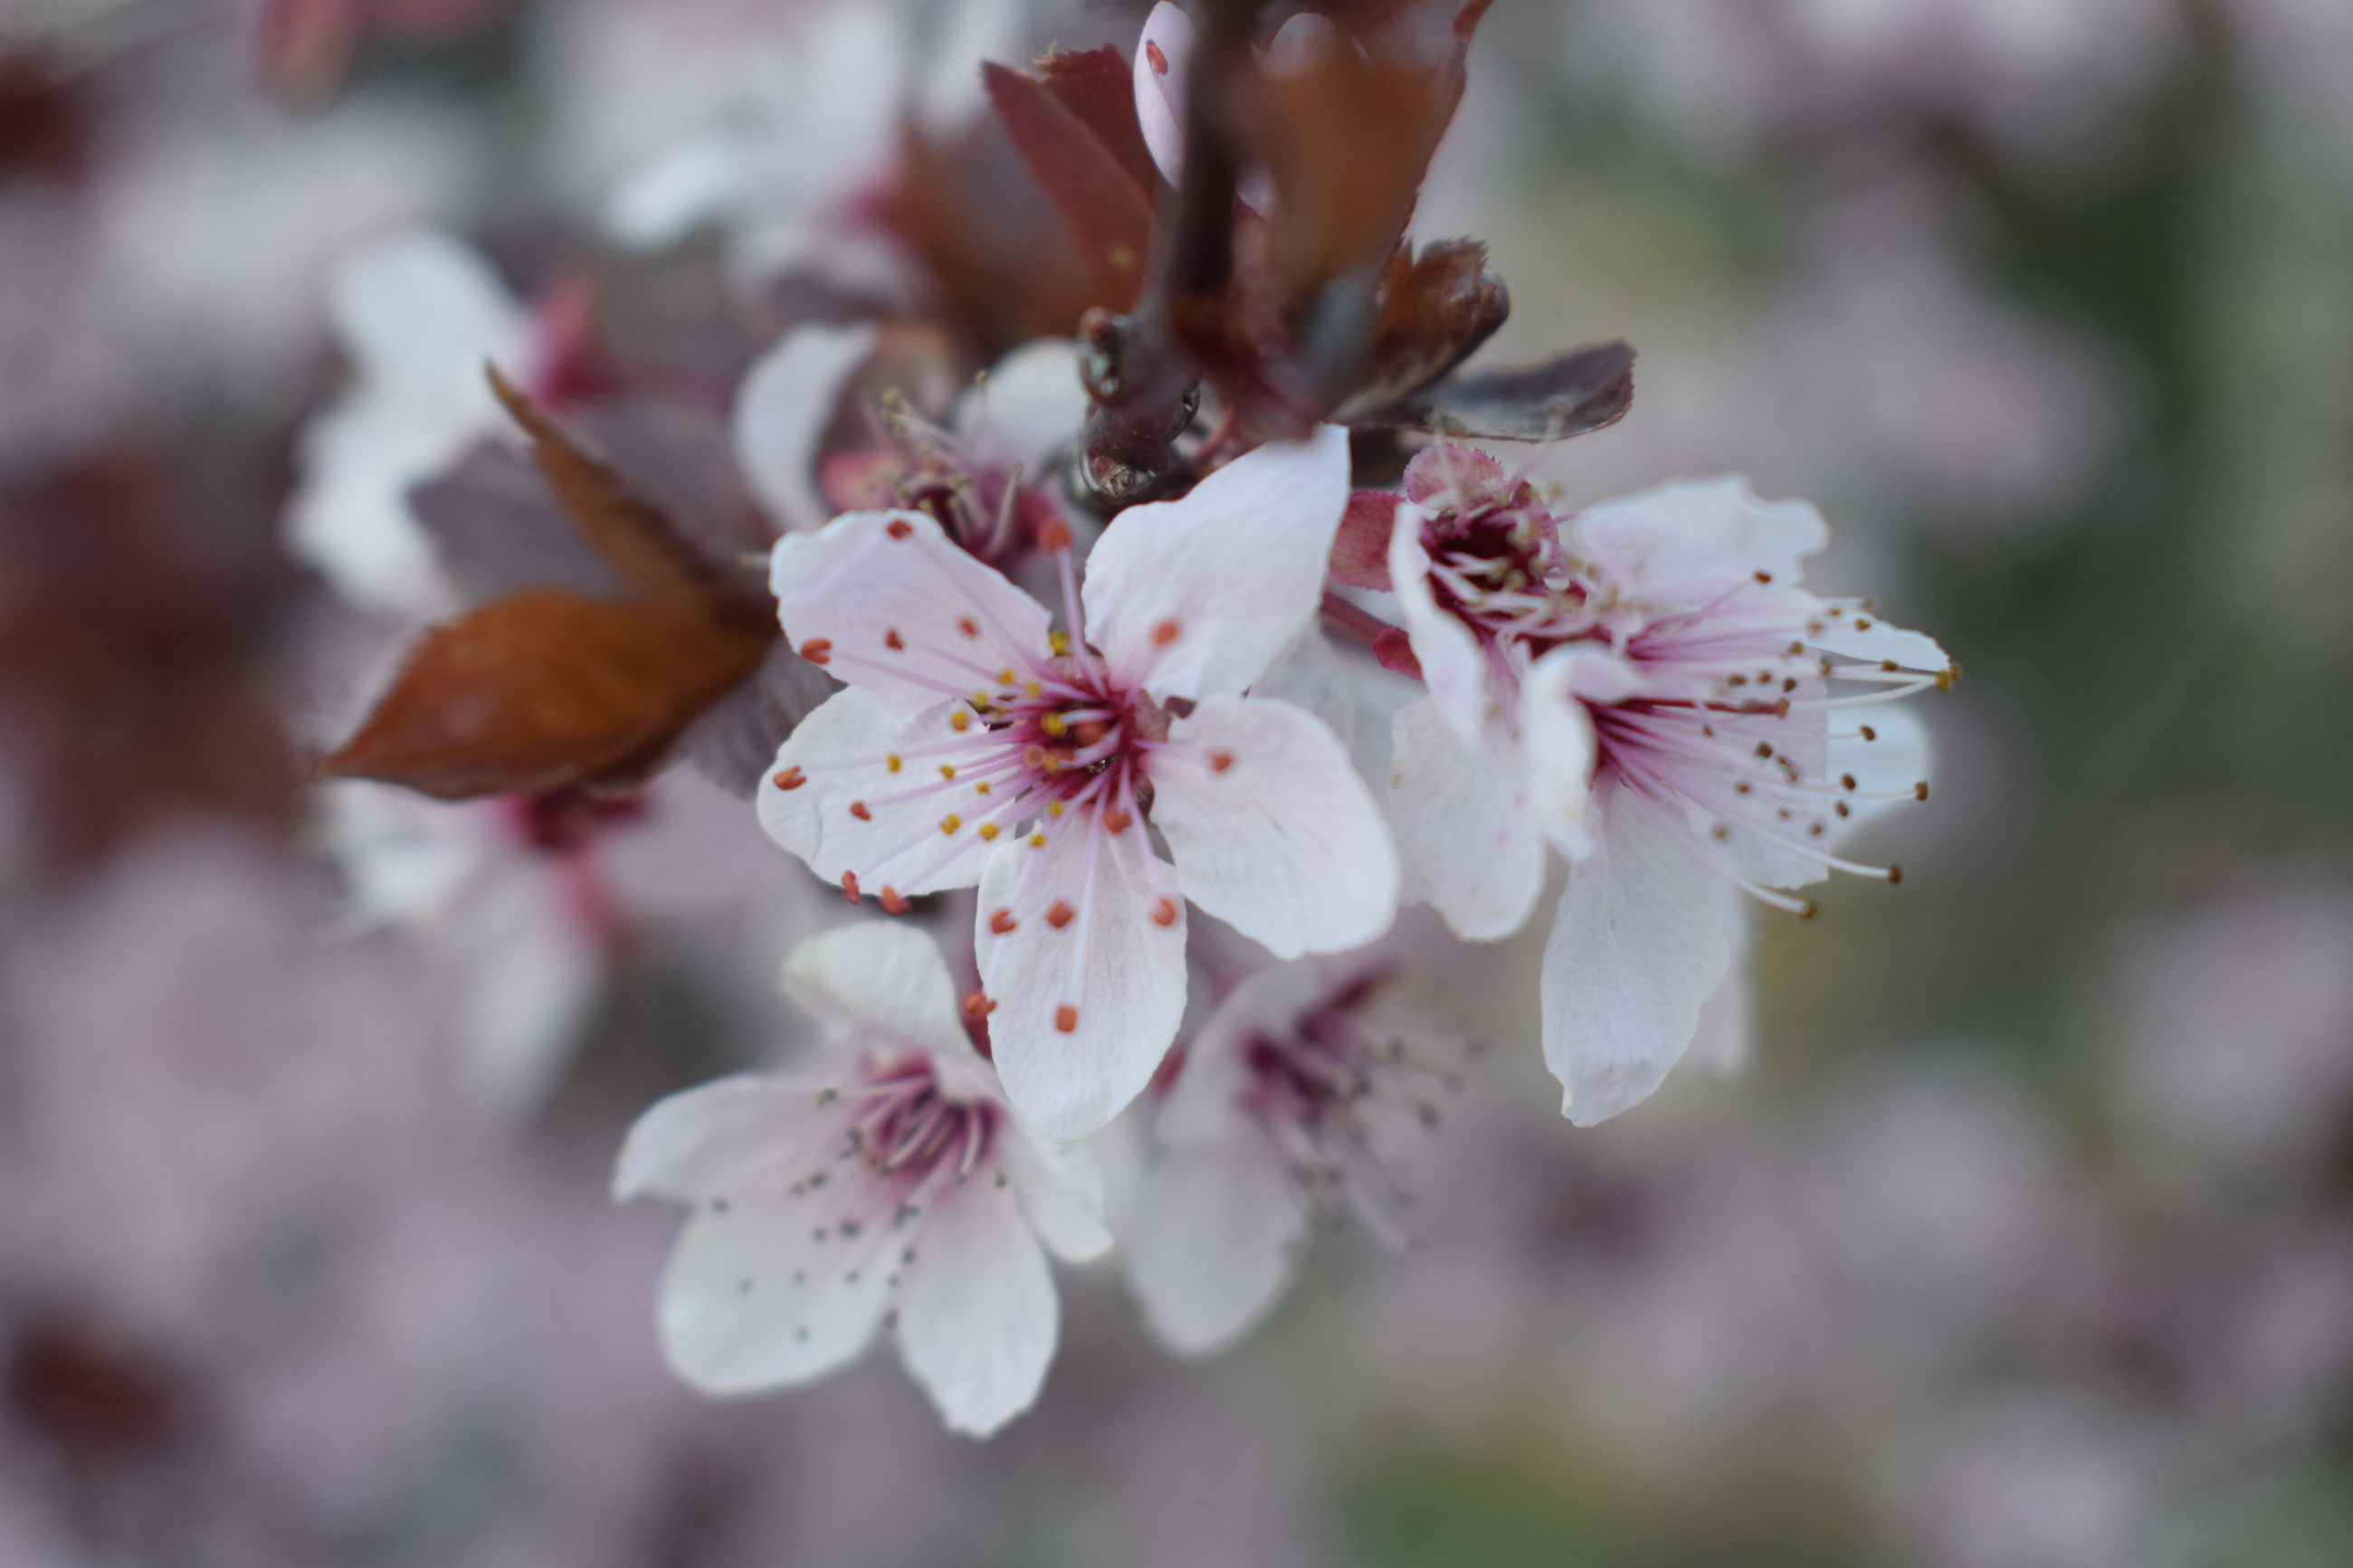 flowering plant, fragility, flower, vulnerability, plant, beauty in nature, freshness, growth, petal, close-up, flower head, pollen, inflorescence, blossom, selective focus, day, tree, cherry blossom, springtime, pink color, no people, outdoors, cherry tree